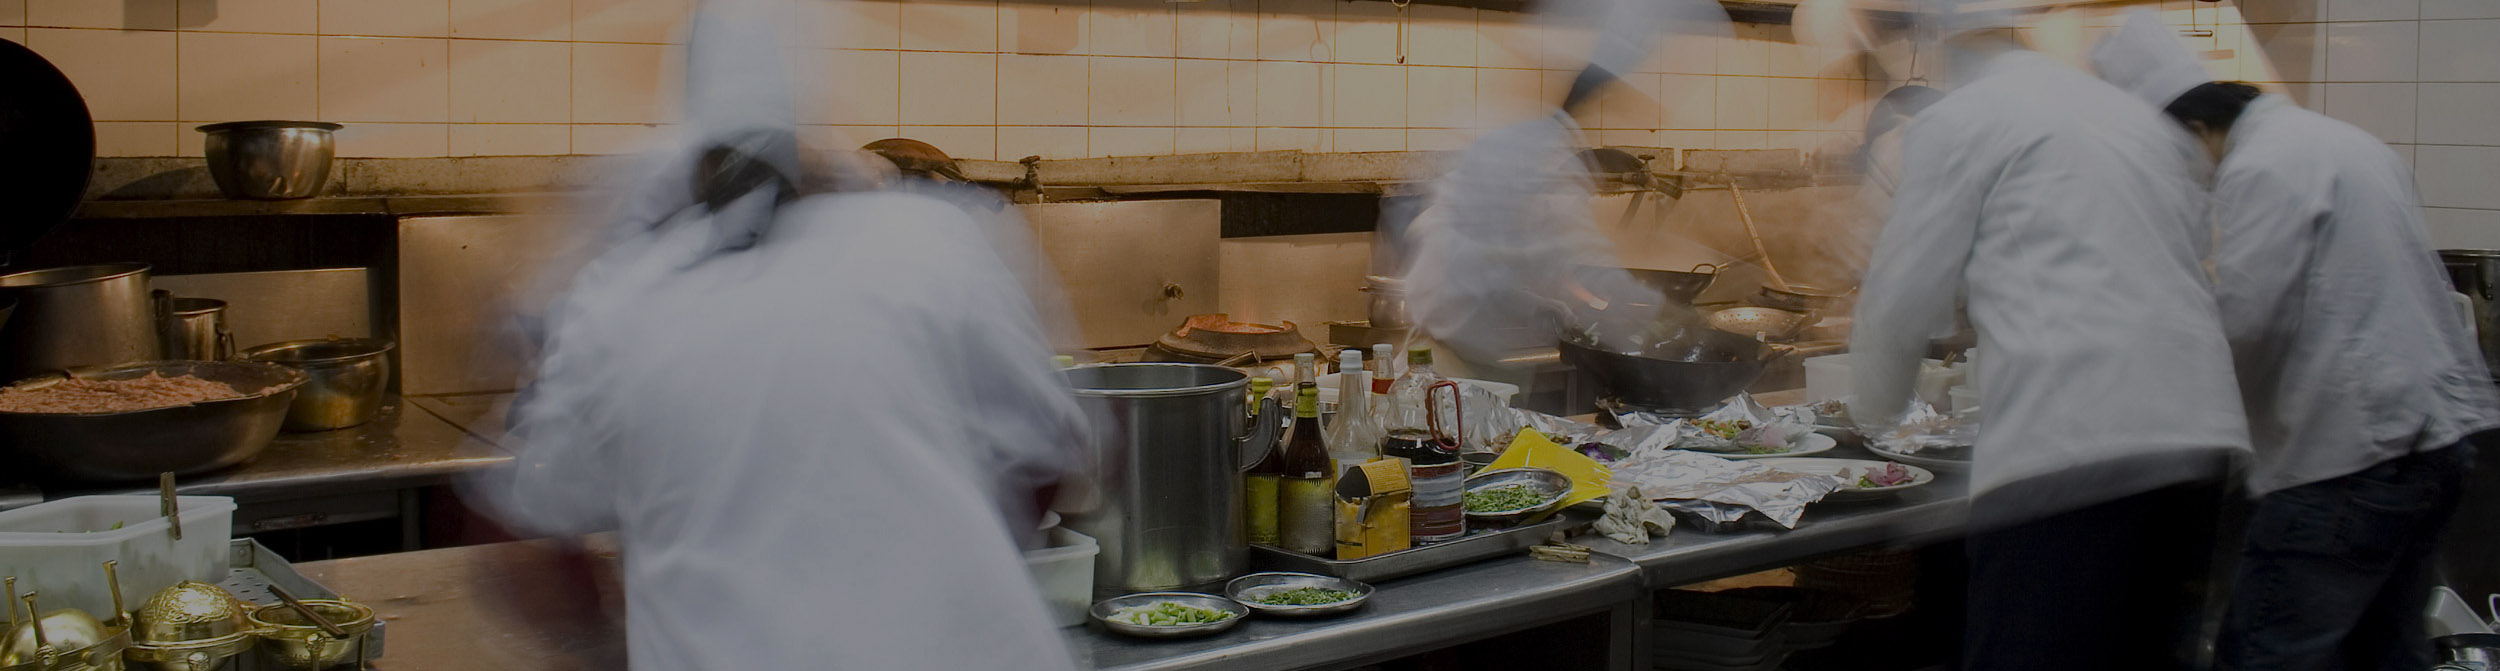 Central Kitchen And Production Management Restaurant Pos